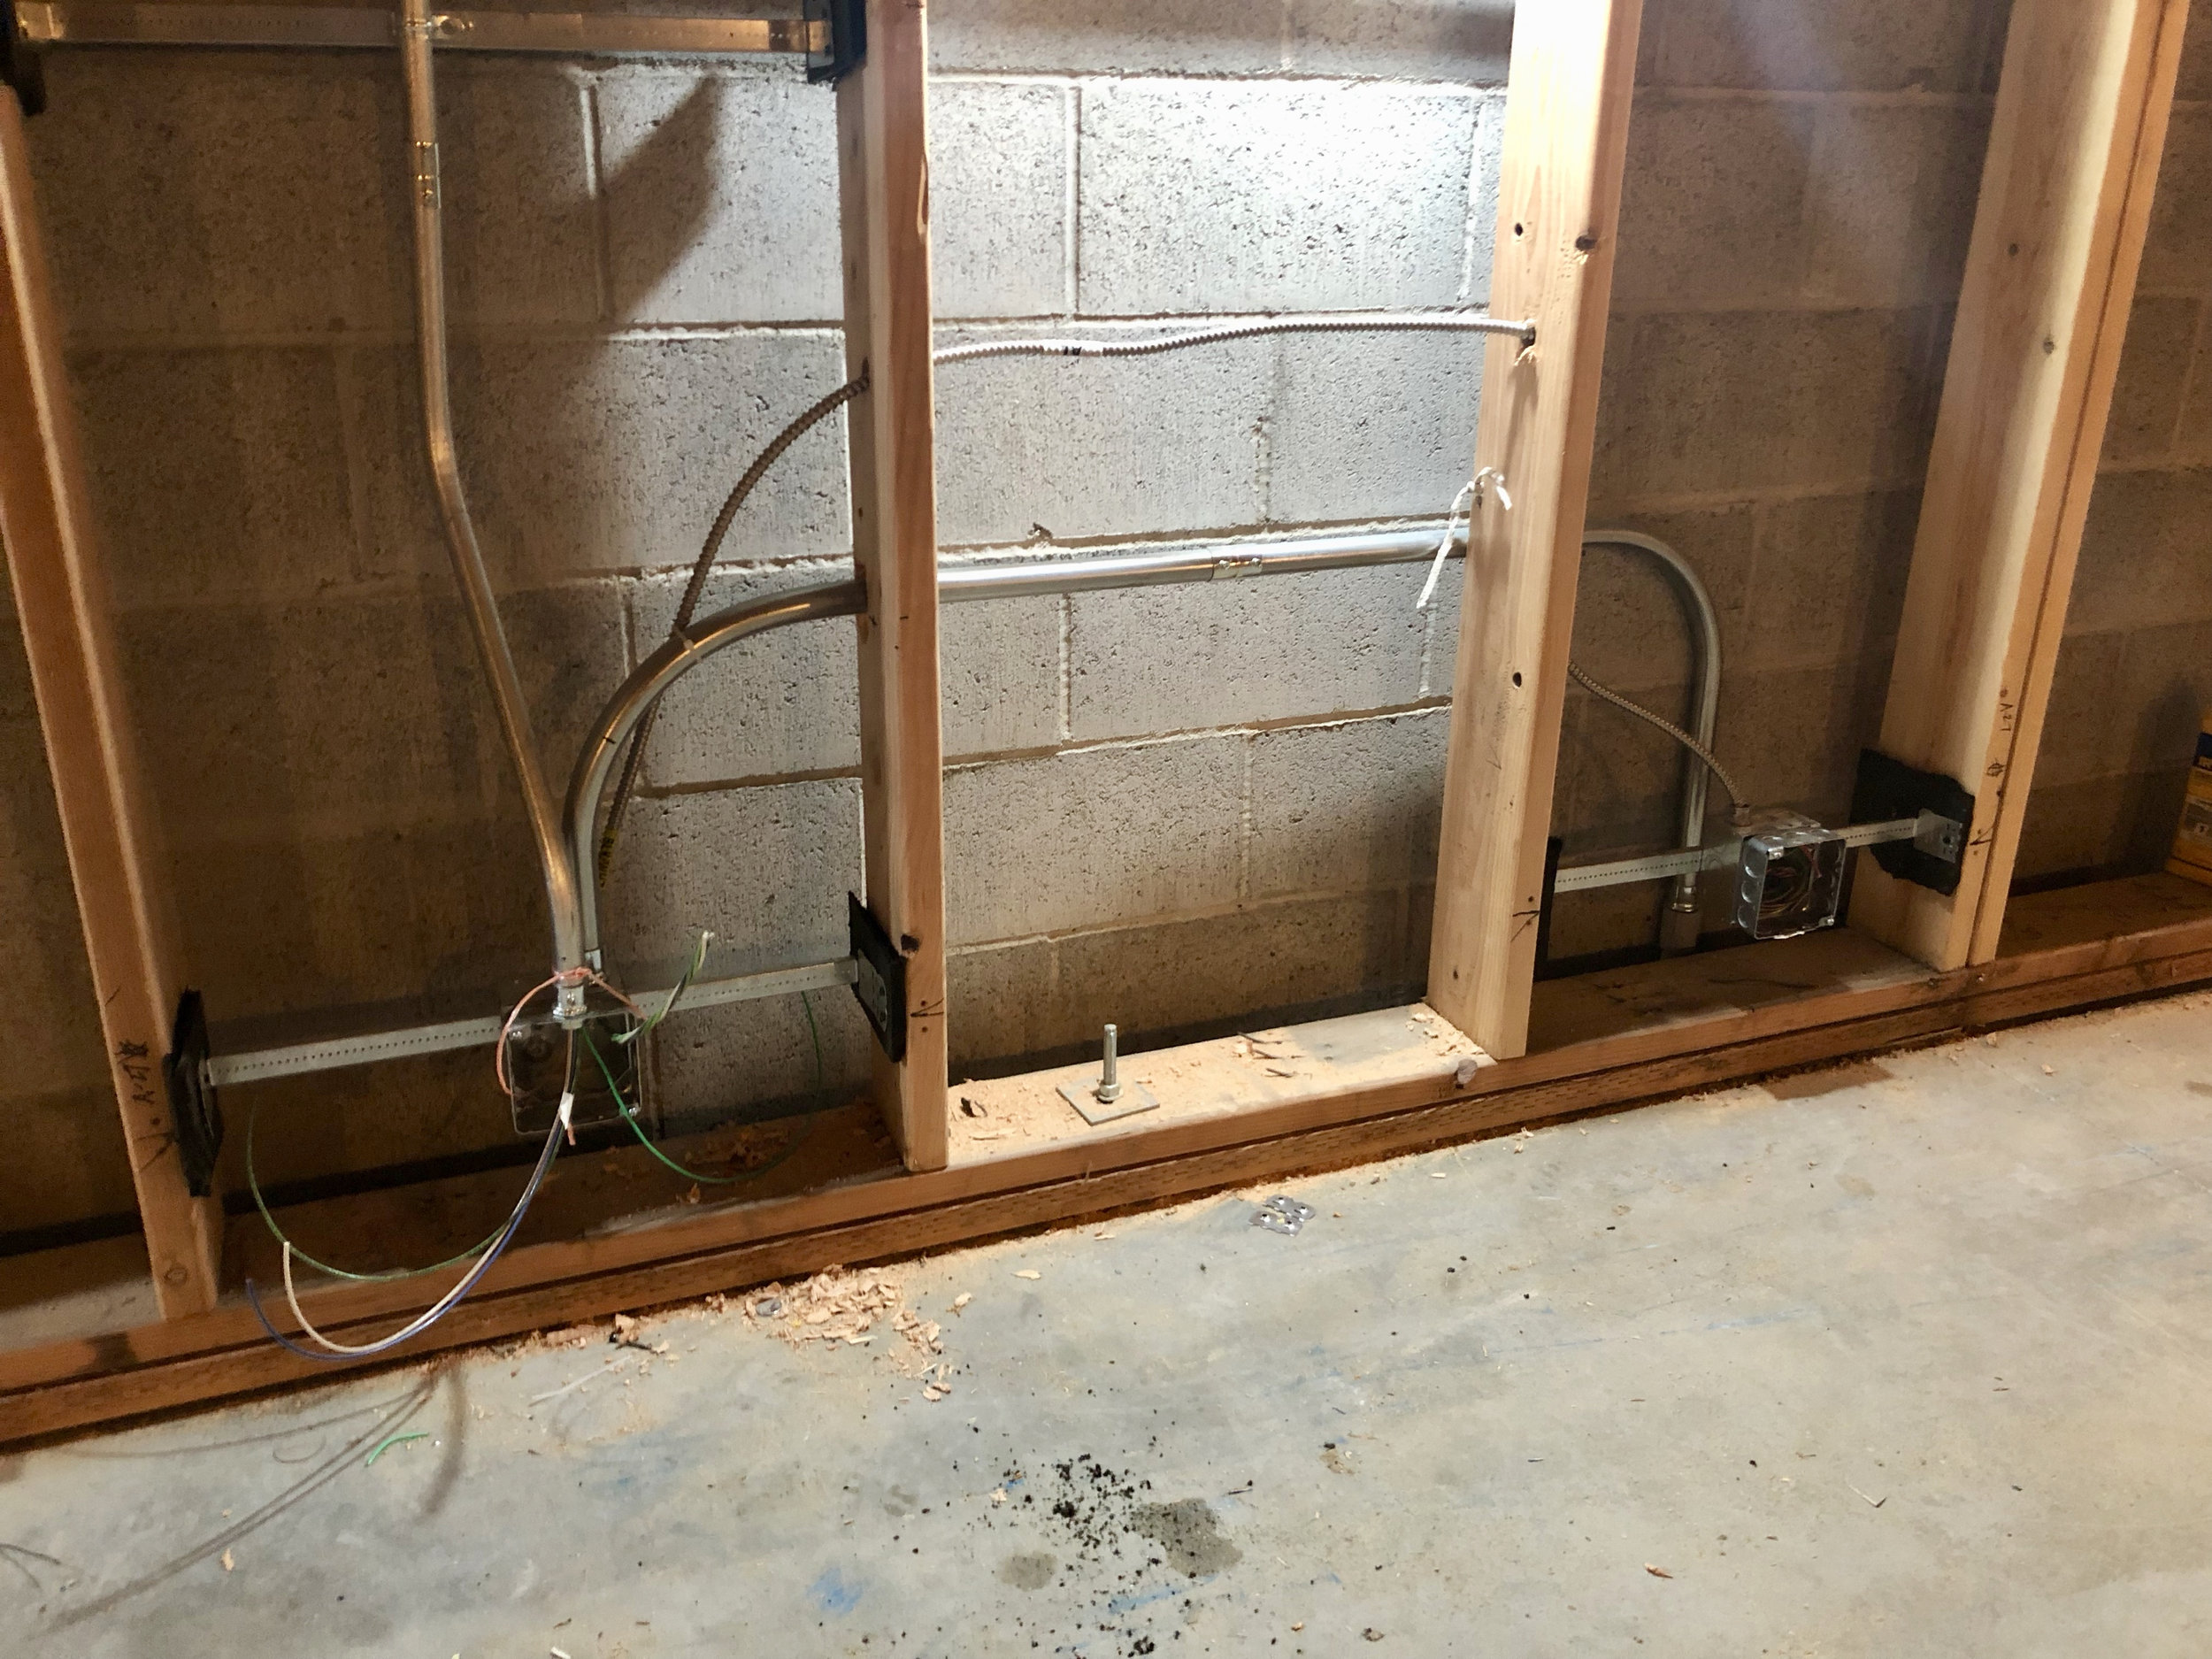 The electricians made some headway this week. There was some discussion as to how to mount the electrical boxes and keep them isolated from the framed walls but sitting in the sheetrock and other acoustic materials which will be mounted. The solution was to use some isolation material between the mounting hardware for the electrical and the framing.